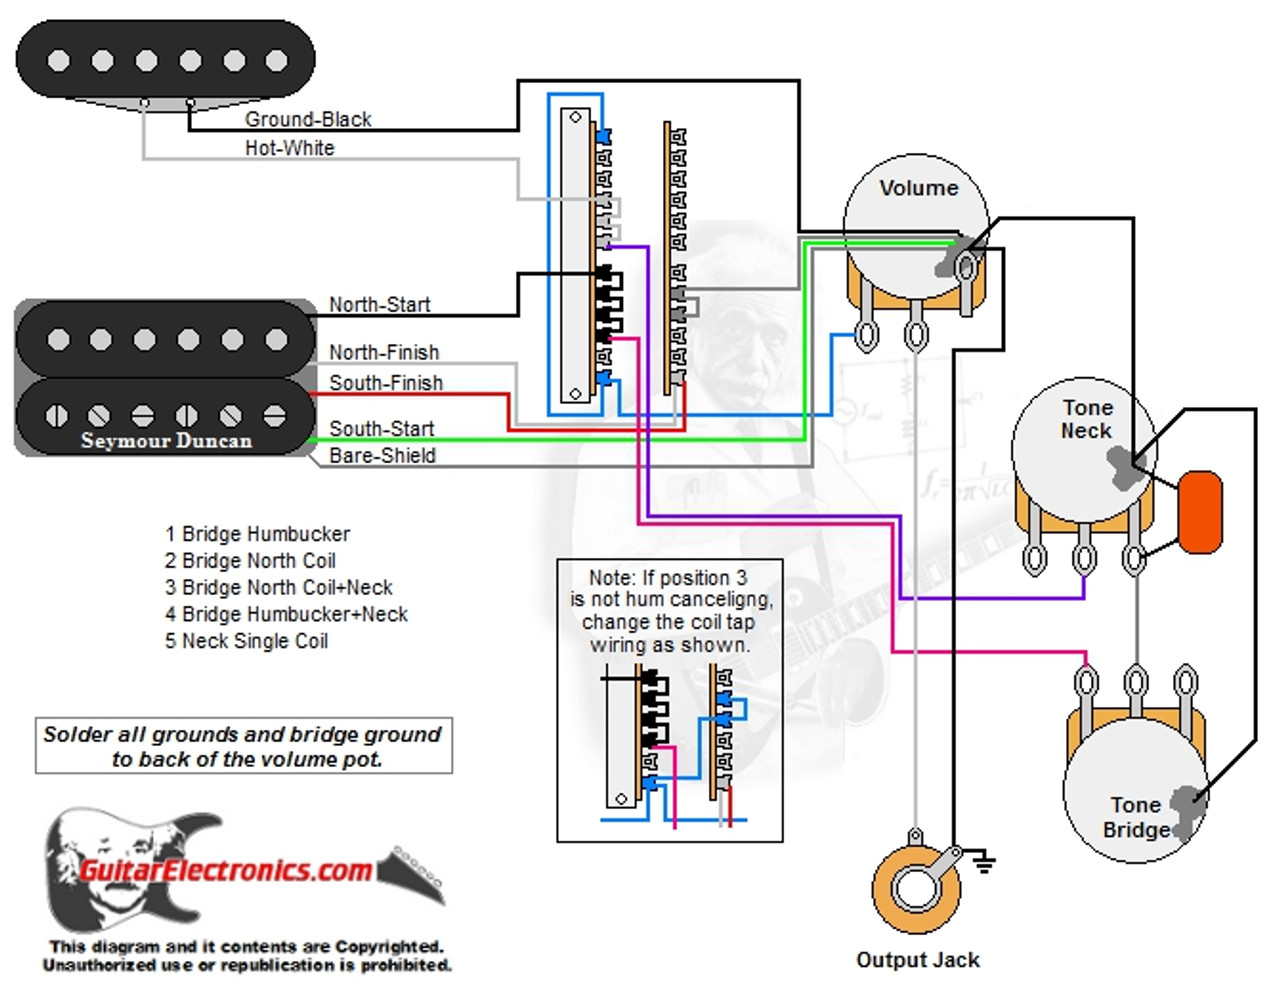 Wiring For Humbucker Single Coil Switching - Wiring Diagram Data on